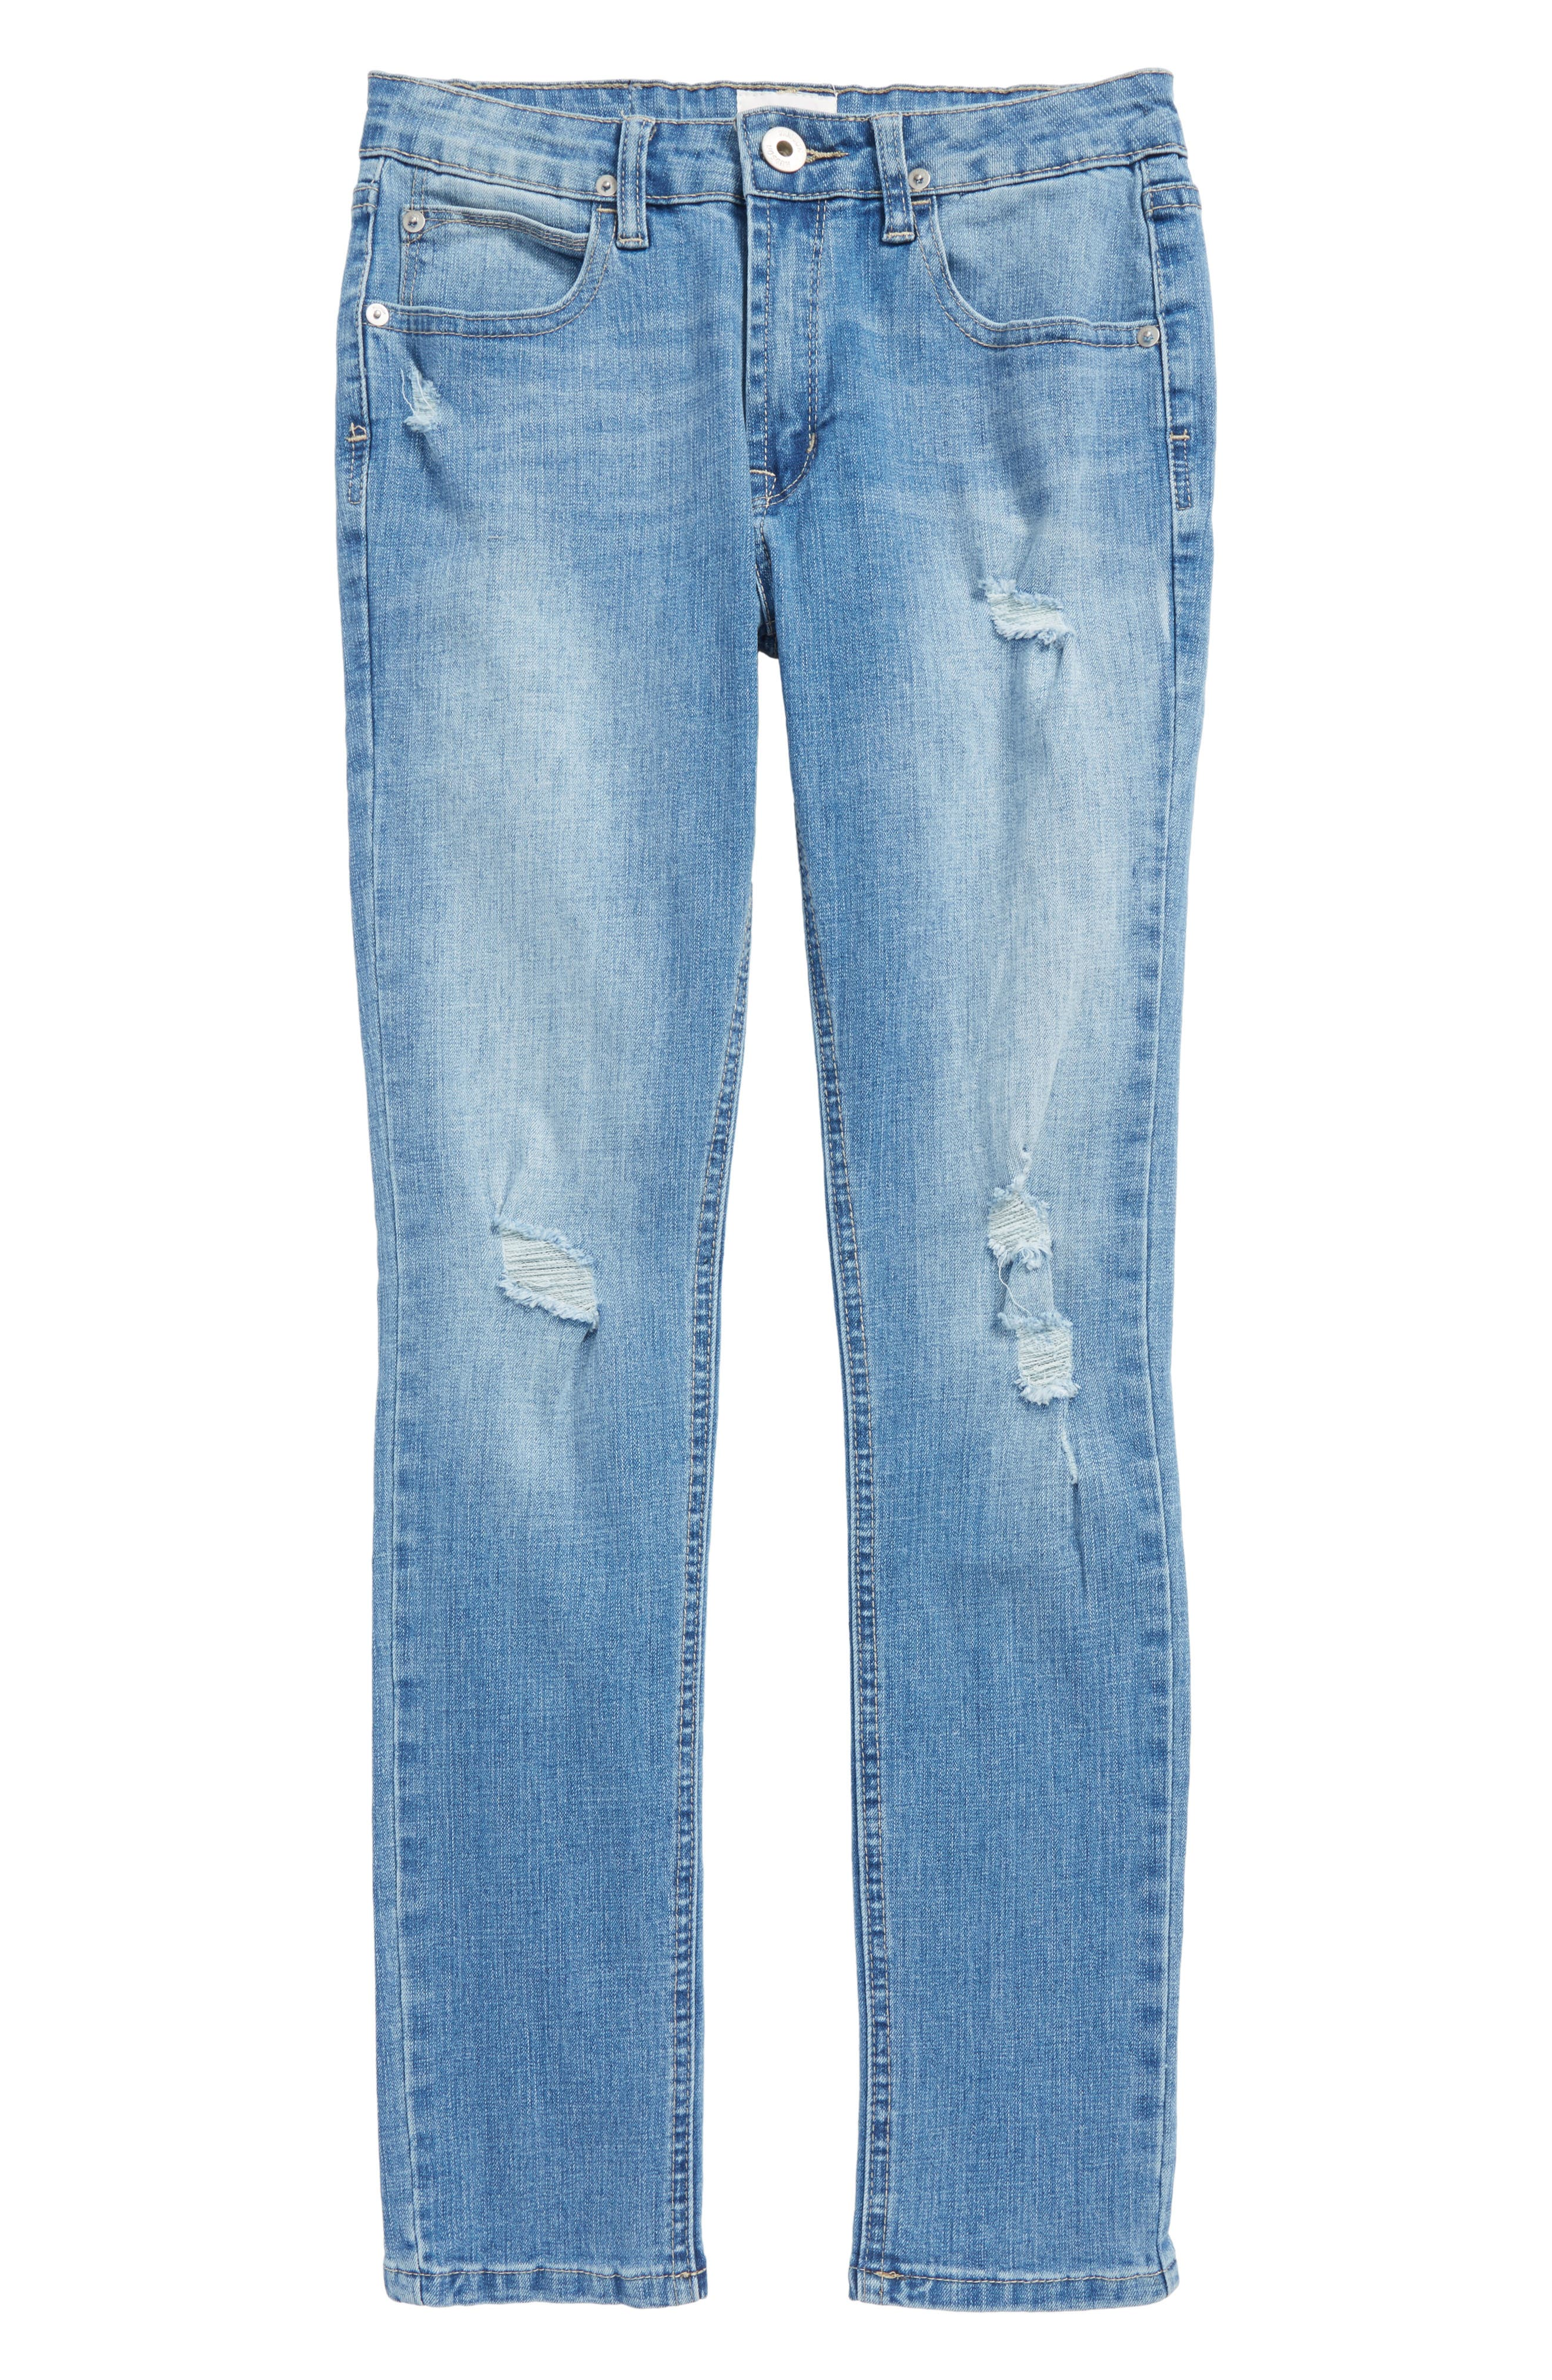 Jude Skinny Jeans,                         Main,                         color, 465